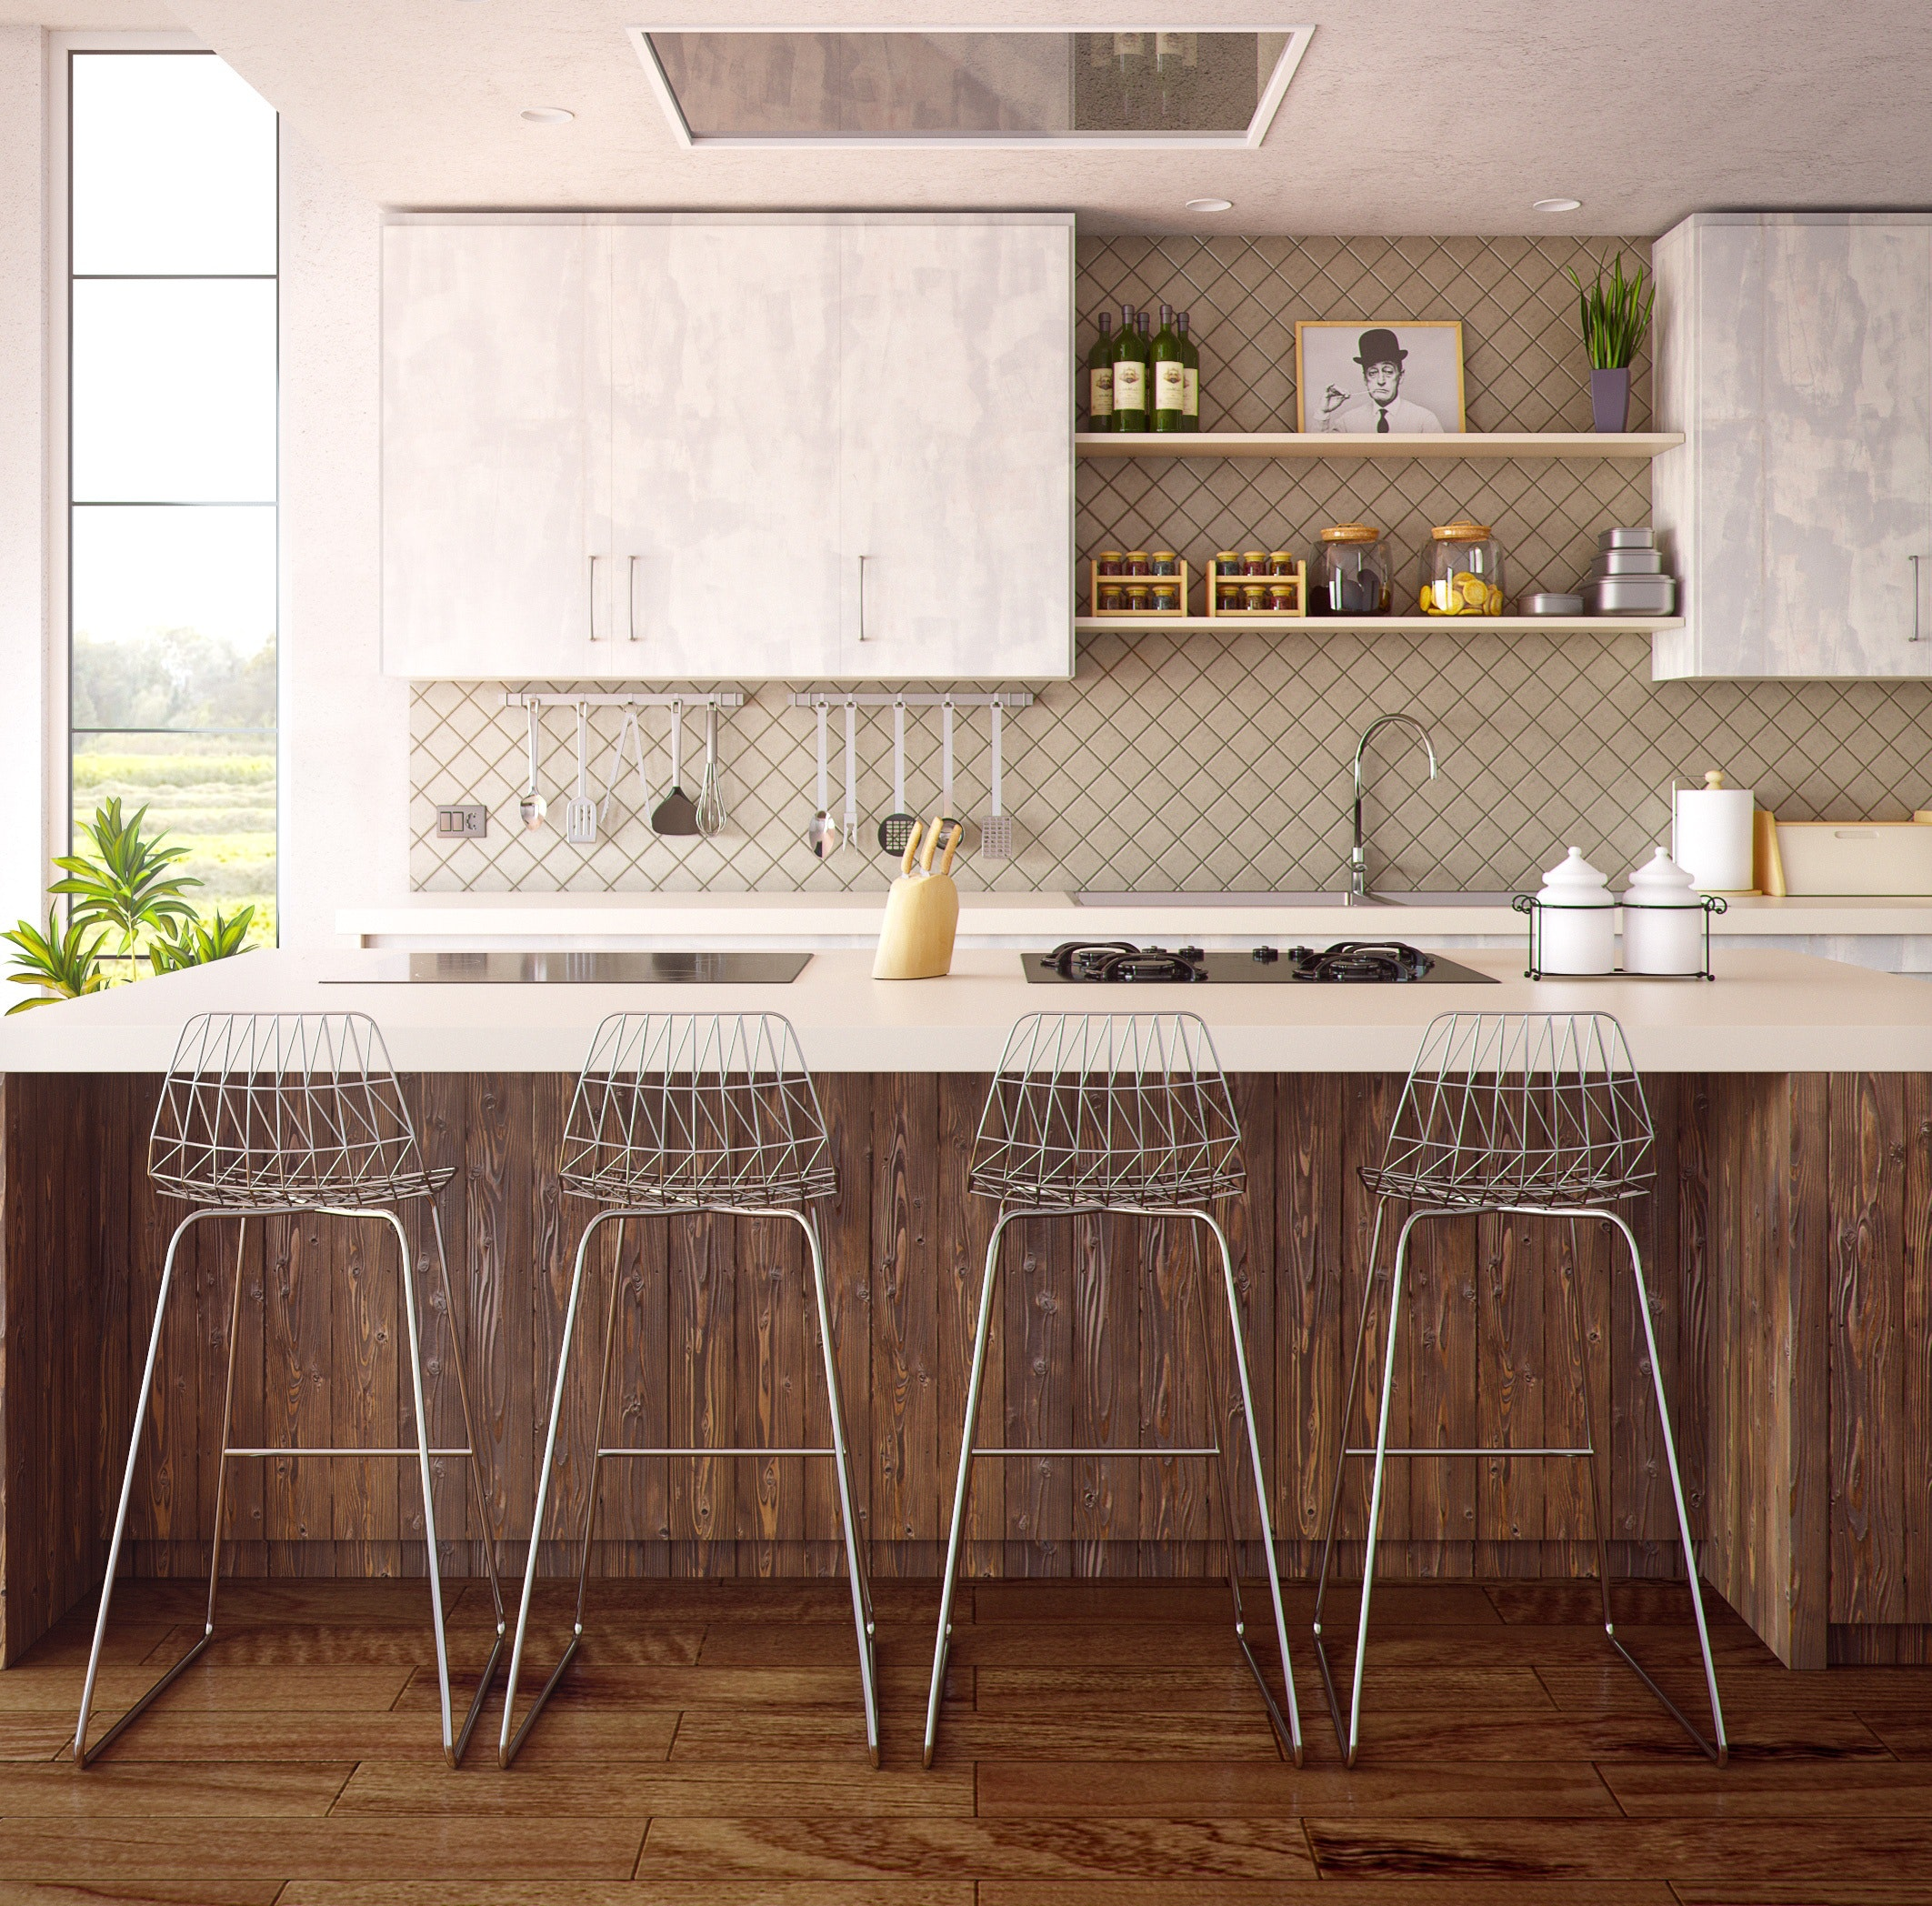 6 Timeless Interior Design Ideas for Your Kitchen - Daily Dream Decor